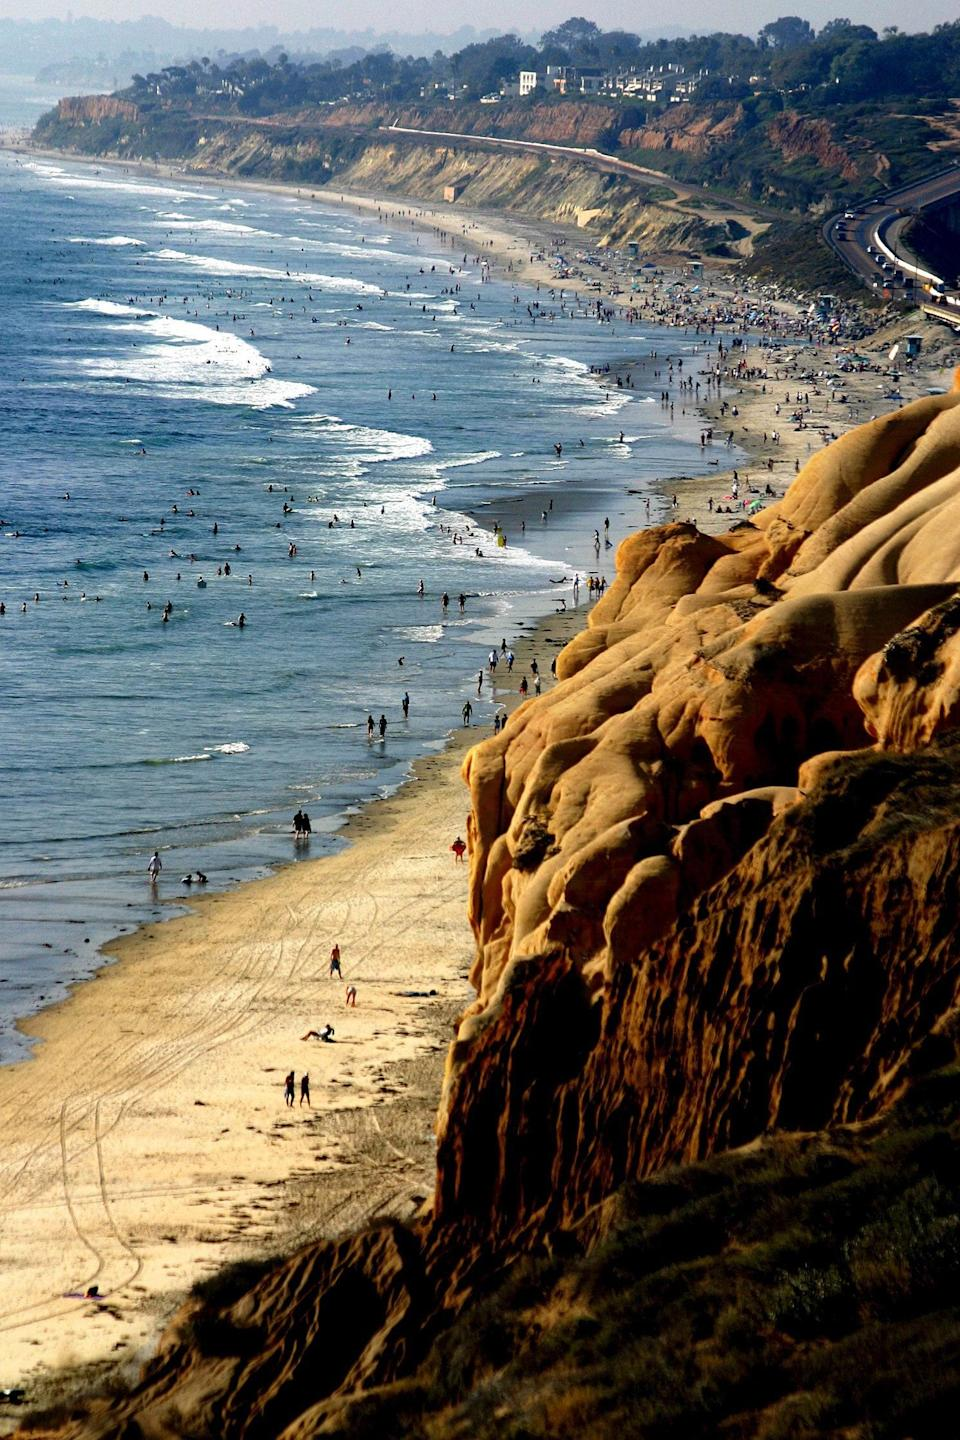 <p><strong>Let's start big picture here.</strong><br> La Jolla Shores is a crescent strip of sand with gentle waves, and the sea caves and underwater canyon make it popular as an easy launch spot for SCUBA diving and kayaking. By night, the sand comes alight with bonfires (there are six fire pits, available first-come, first-served.)</p> <p><strong>Tell us more about the sea caves.</strong><br> The La Jolla Underwater Park and Ecological Reserve draws kayakers who come to explore sea caves on kayak tours, and SCUBA divers should make their way toward the two underwater canyons. Harmless leopard sharks are known to congregate in La Jolla Shores during summertime, and can be easily spotted by divers or snorkelers.</p> <p><strong>What's the best way to experience the beach?</strong><br> Rent kayaks or take a guided tour from nearby La Jolla Kayak, La Jolla Sea Cave Kayaks, or Bike & Kayak Tours La Jolla. Those hoping to get in on the underwater action should take a guided SCUBA dive tour with La Jolla Dive or SD Expeditions. Beachgoers hoping to lounge or swim can simply grab a spot on the sand and enjoy the view.</p> <p><strong>All said and done, what—and who—is this best for?</strong><br> The beach is most appreciated on two ends of the spectrum: by travelers looking for an active day in the water, and by parents of smaller children who will enjoy the parks, playground, and gentle waves.</p>